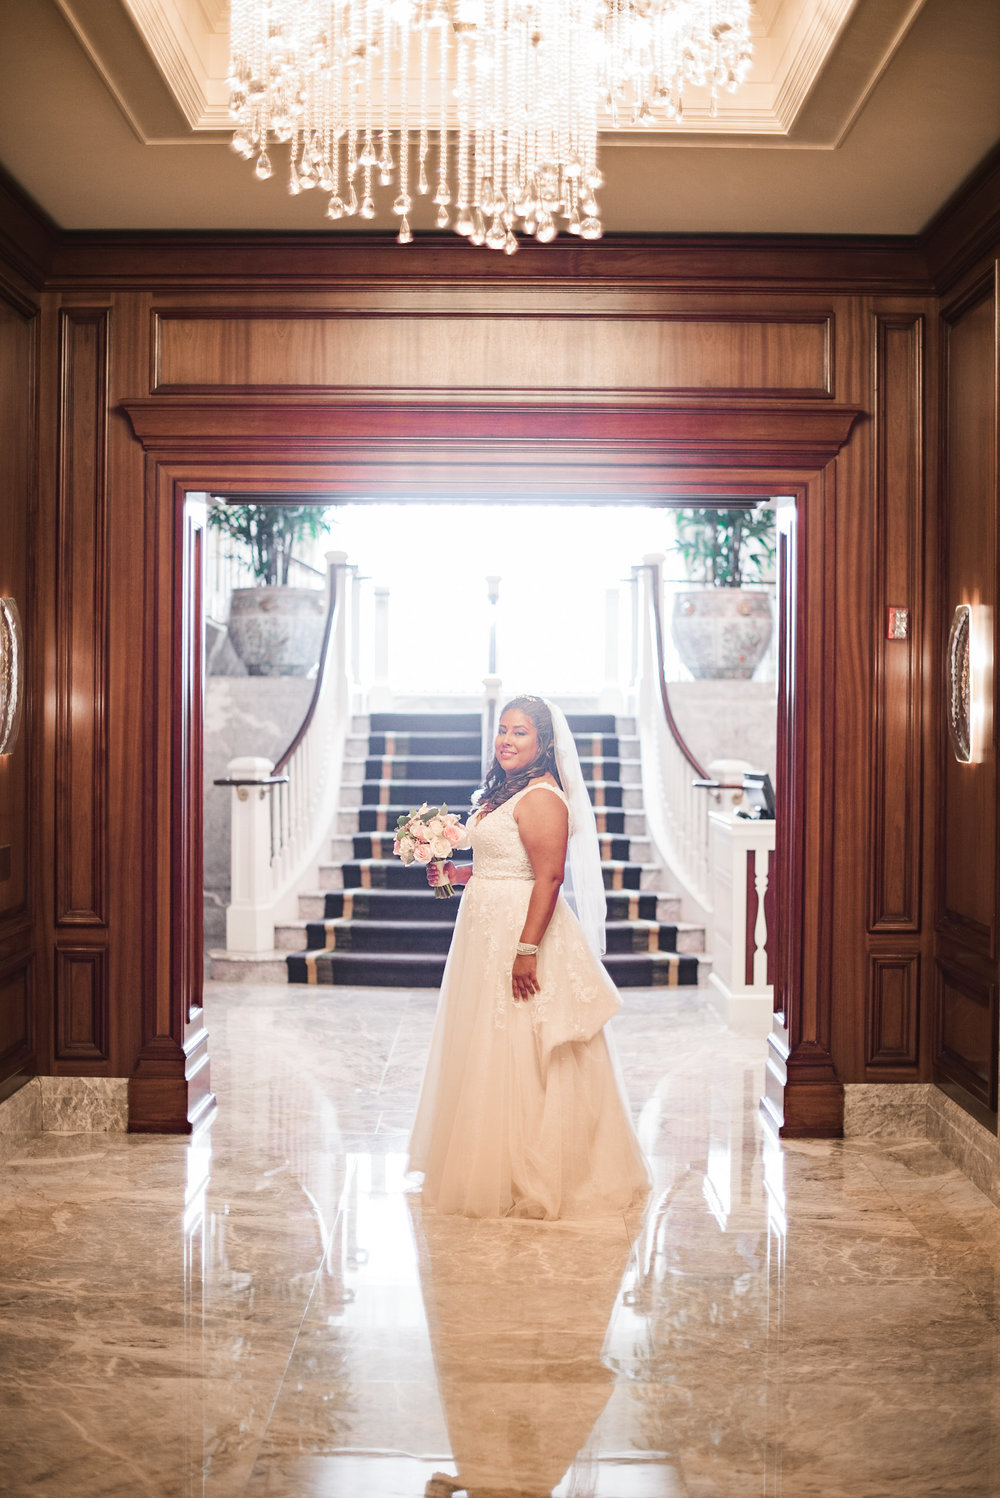 Bride standing in long hallway